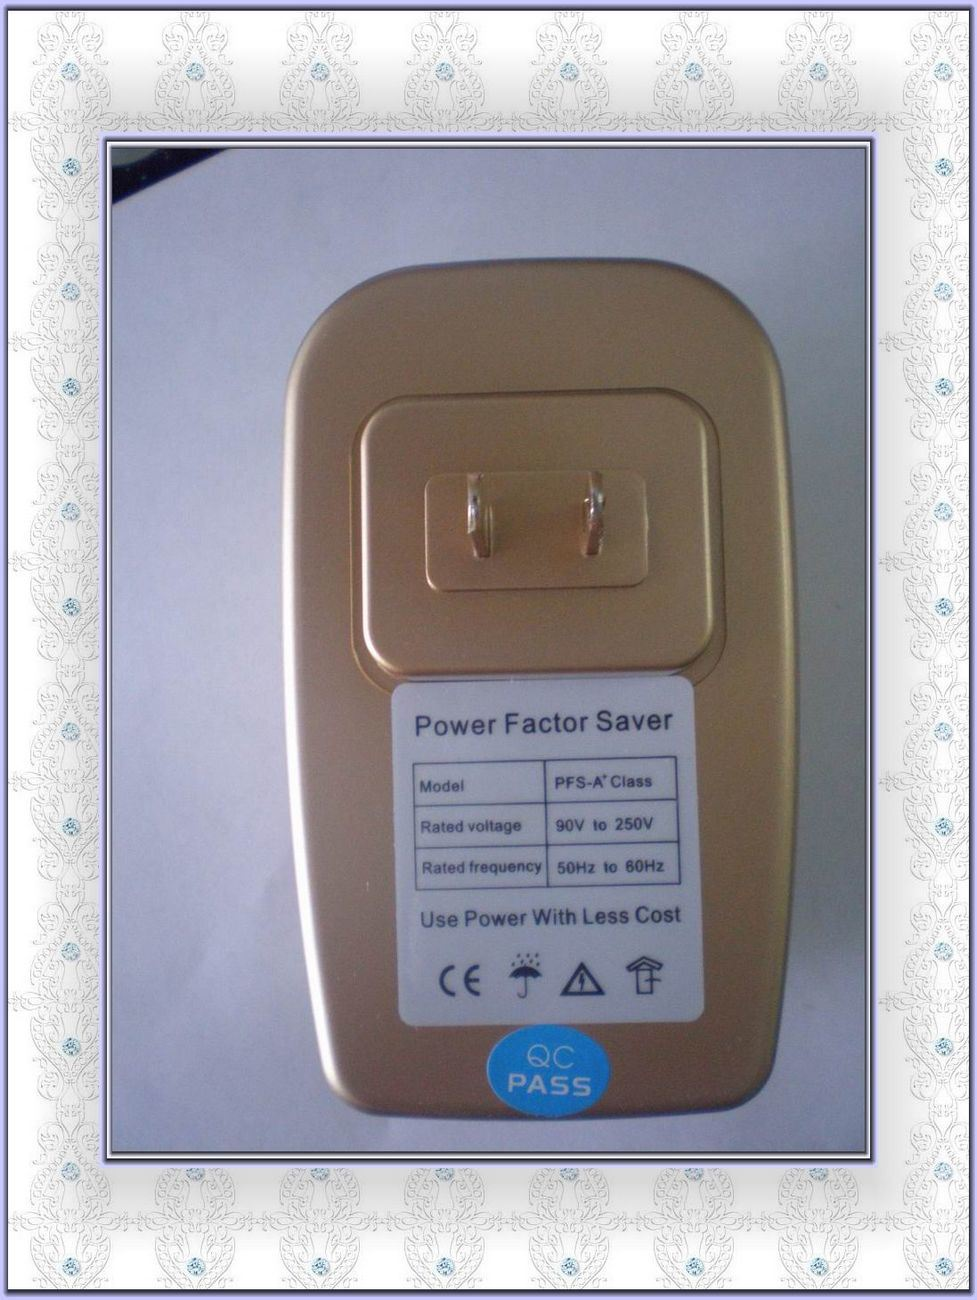 Power Factor Saver (PS-001)